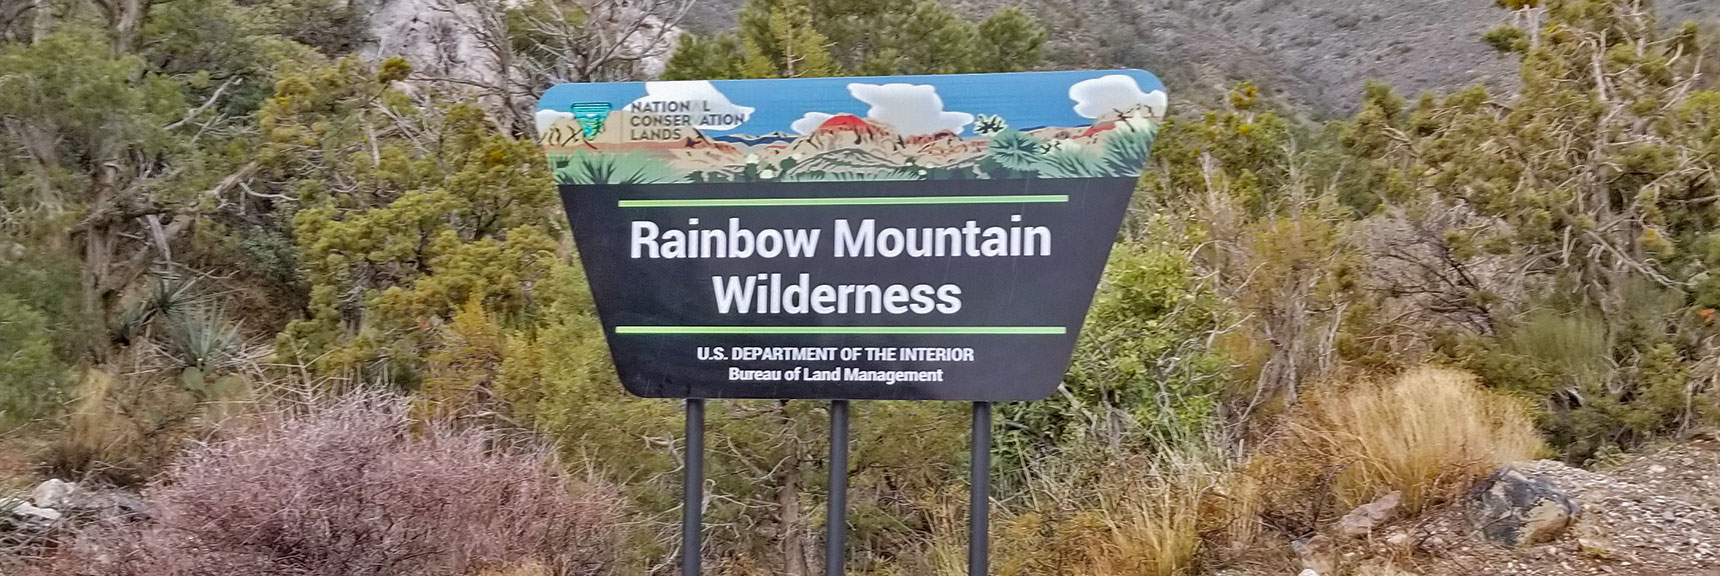 Rainbow Mountain Wilderness Entrance on Rocky Gap Road at White Rock Mountain Loop in Red Rock Park, Nevada